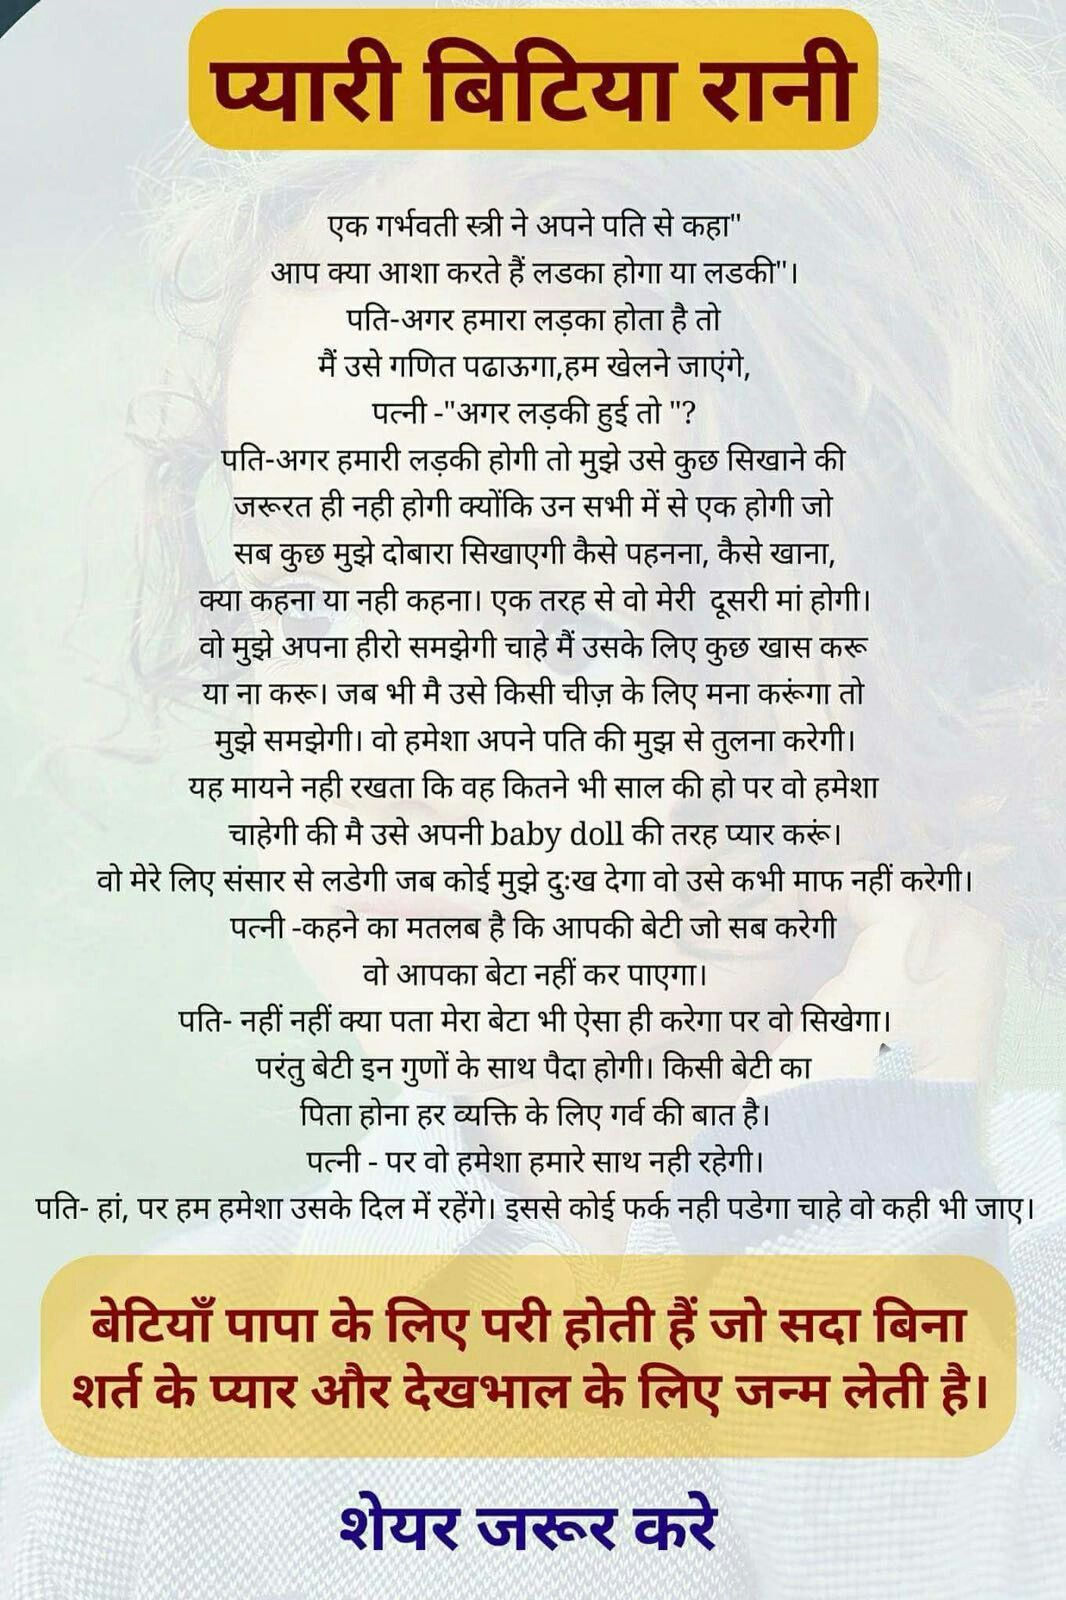 Pin by Seema Chhetri on rishty pyr bhre Mother nature